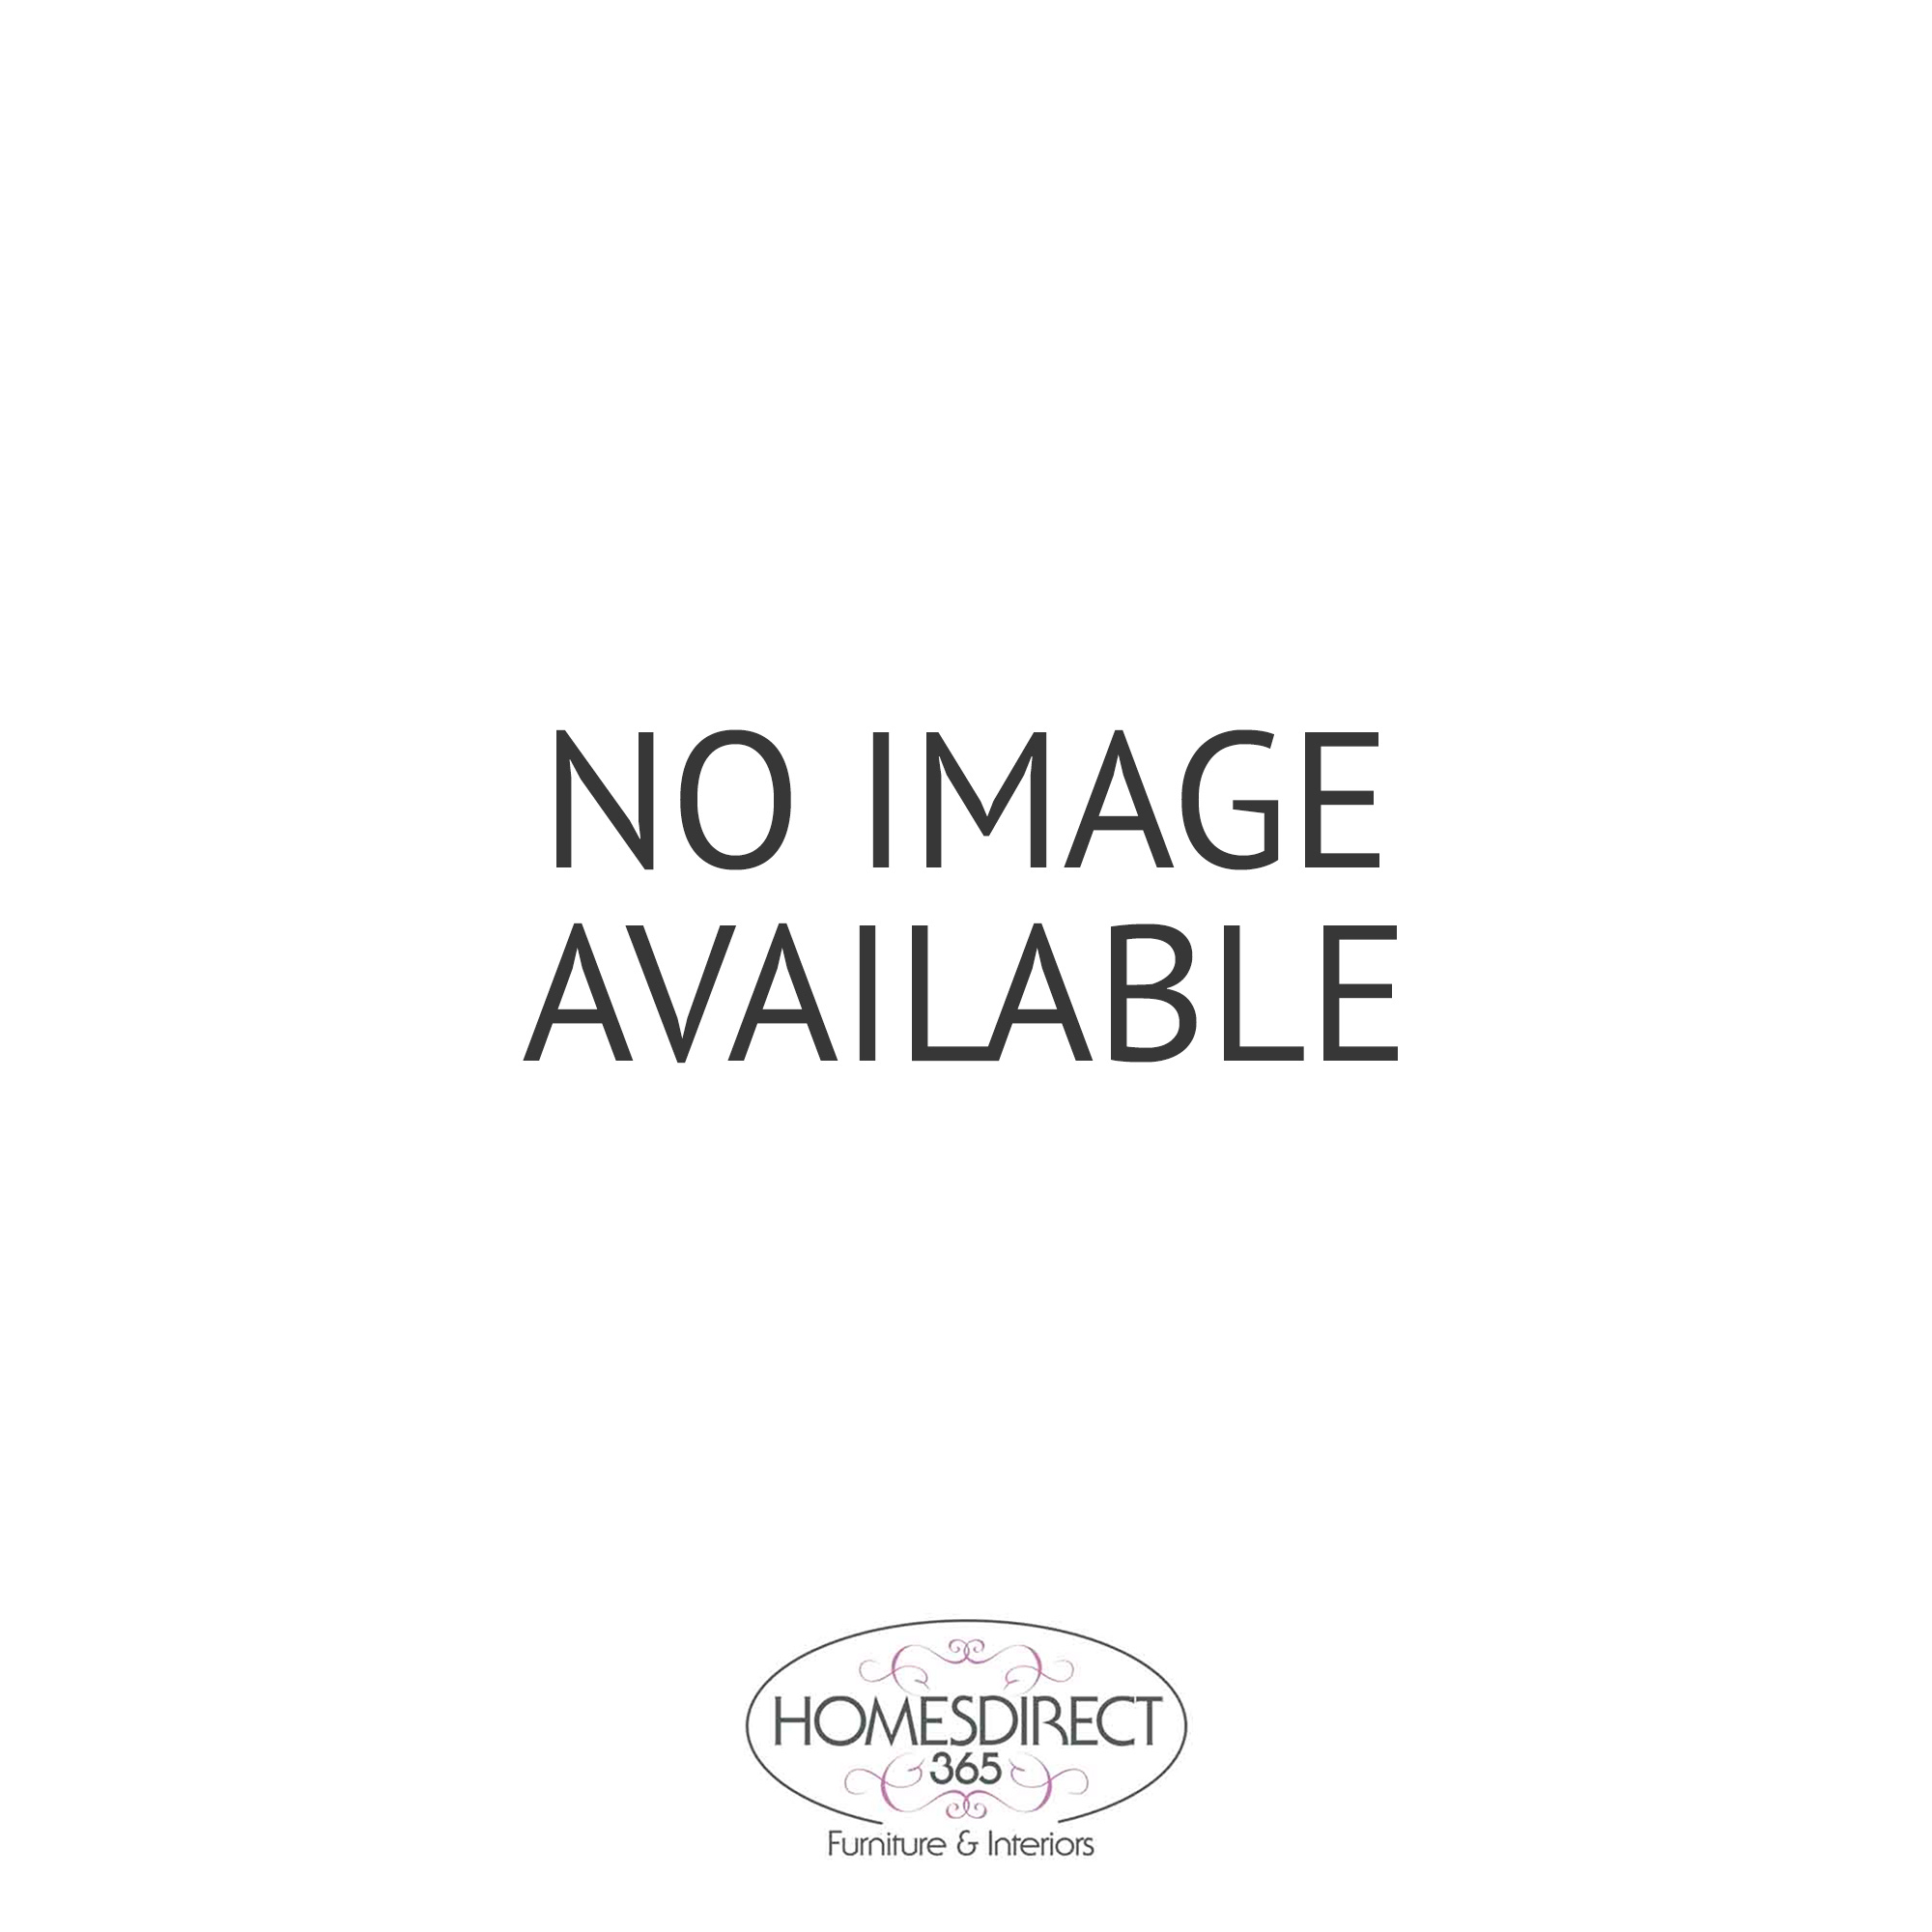 https://www.homesdirect365.co.uk/images/eames-style-office-chair-p38437-24928_medium.jpg